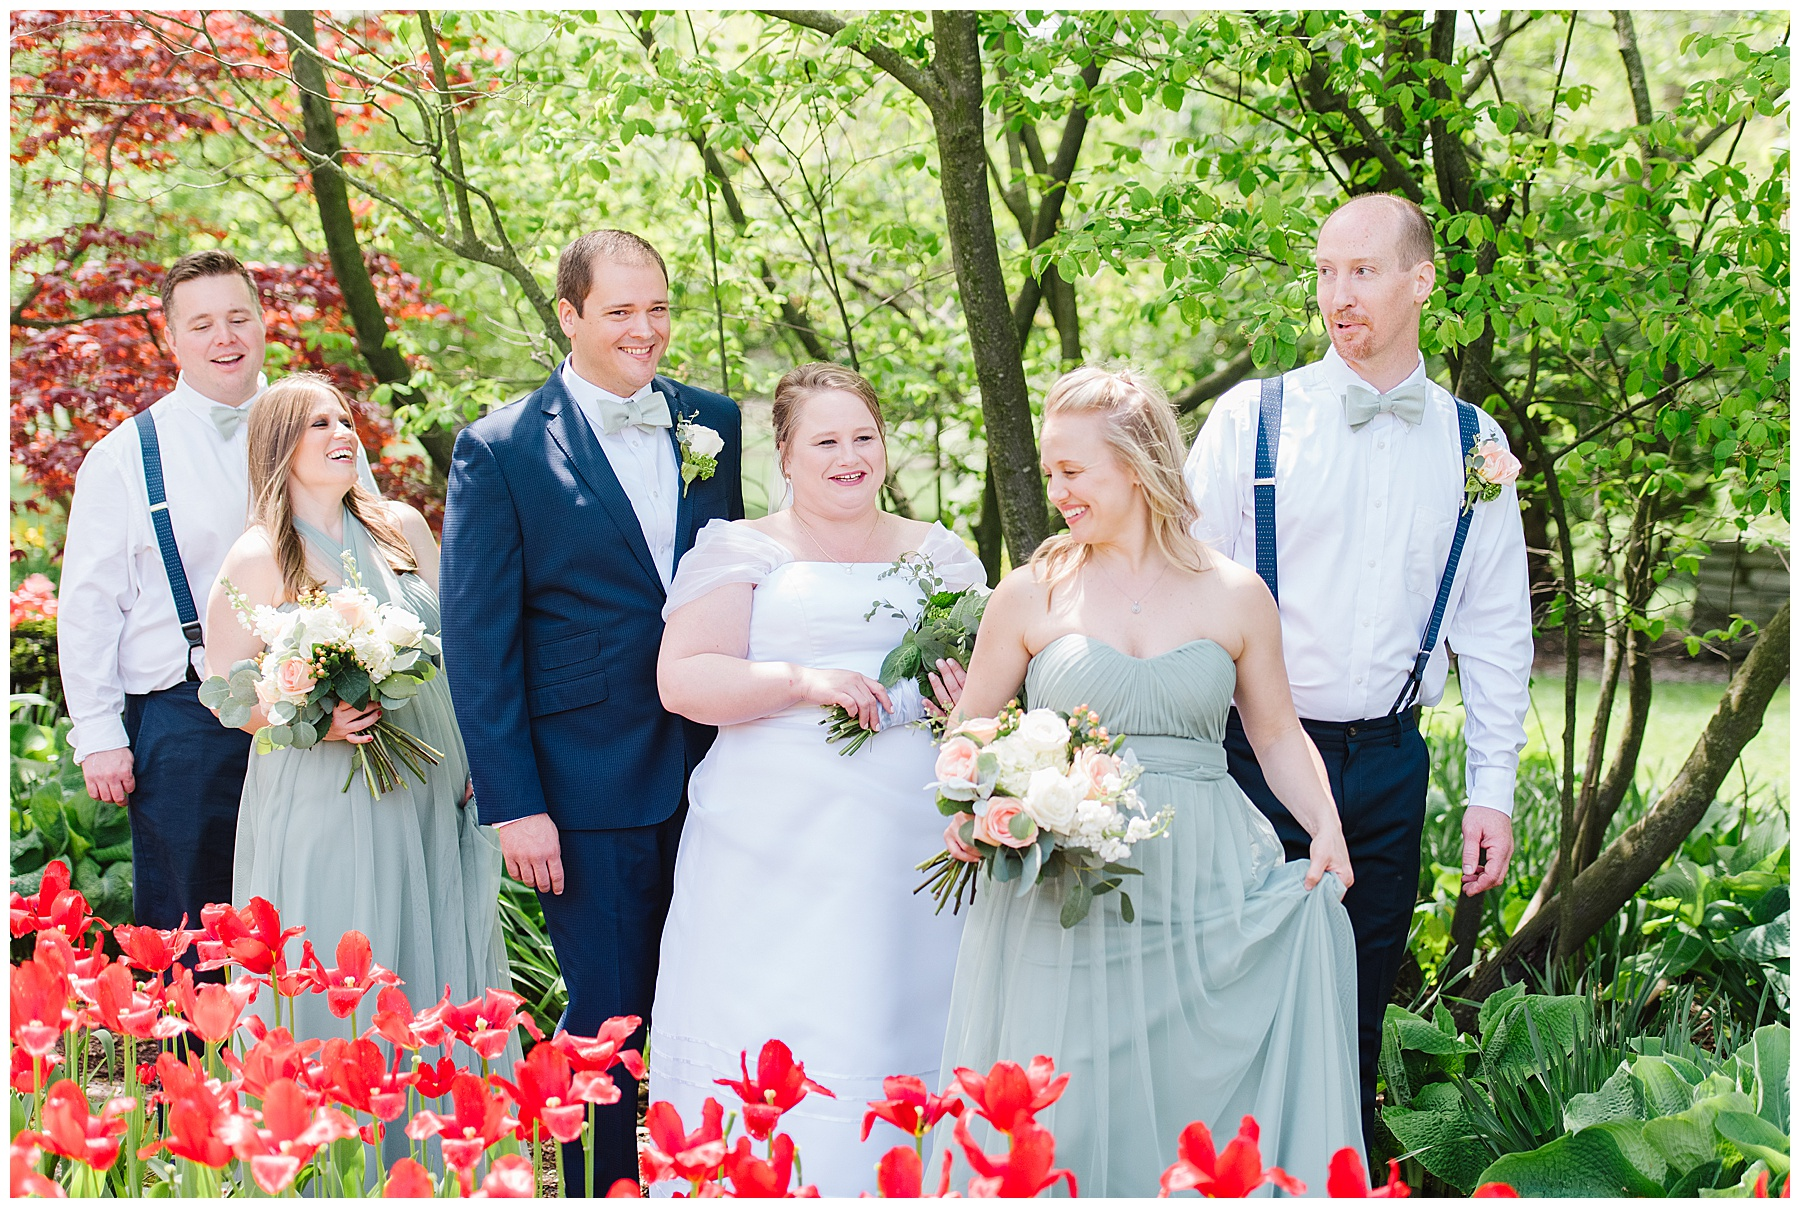 foster park fort wayne indiana wedding photographer_0242